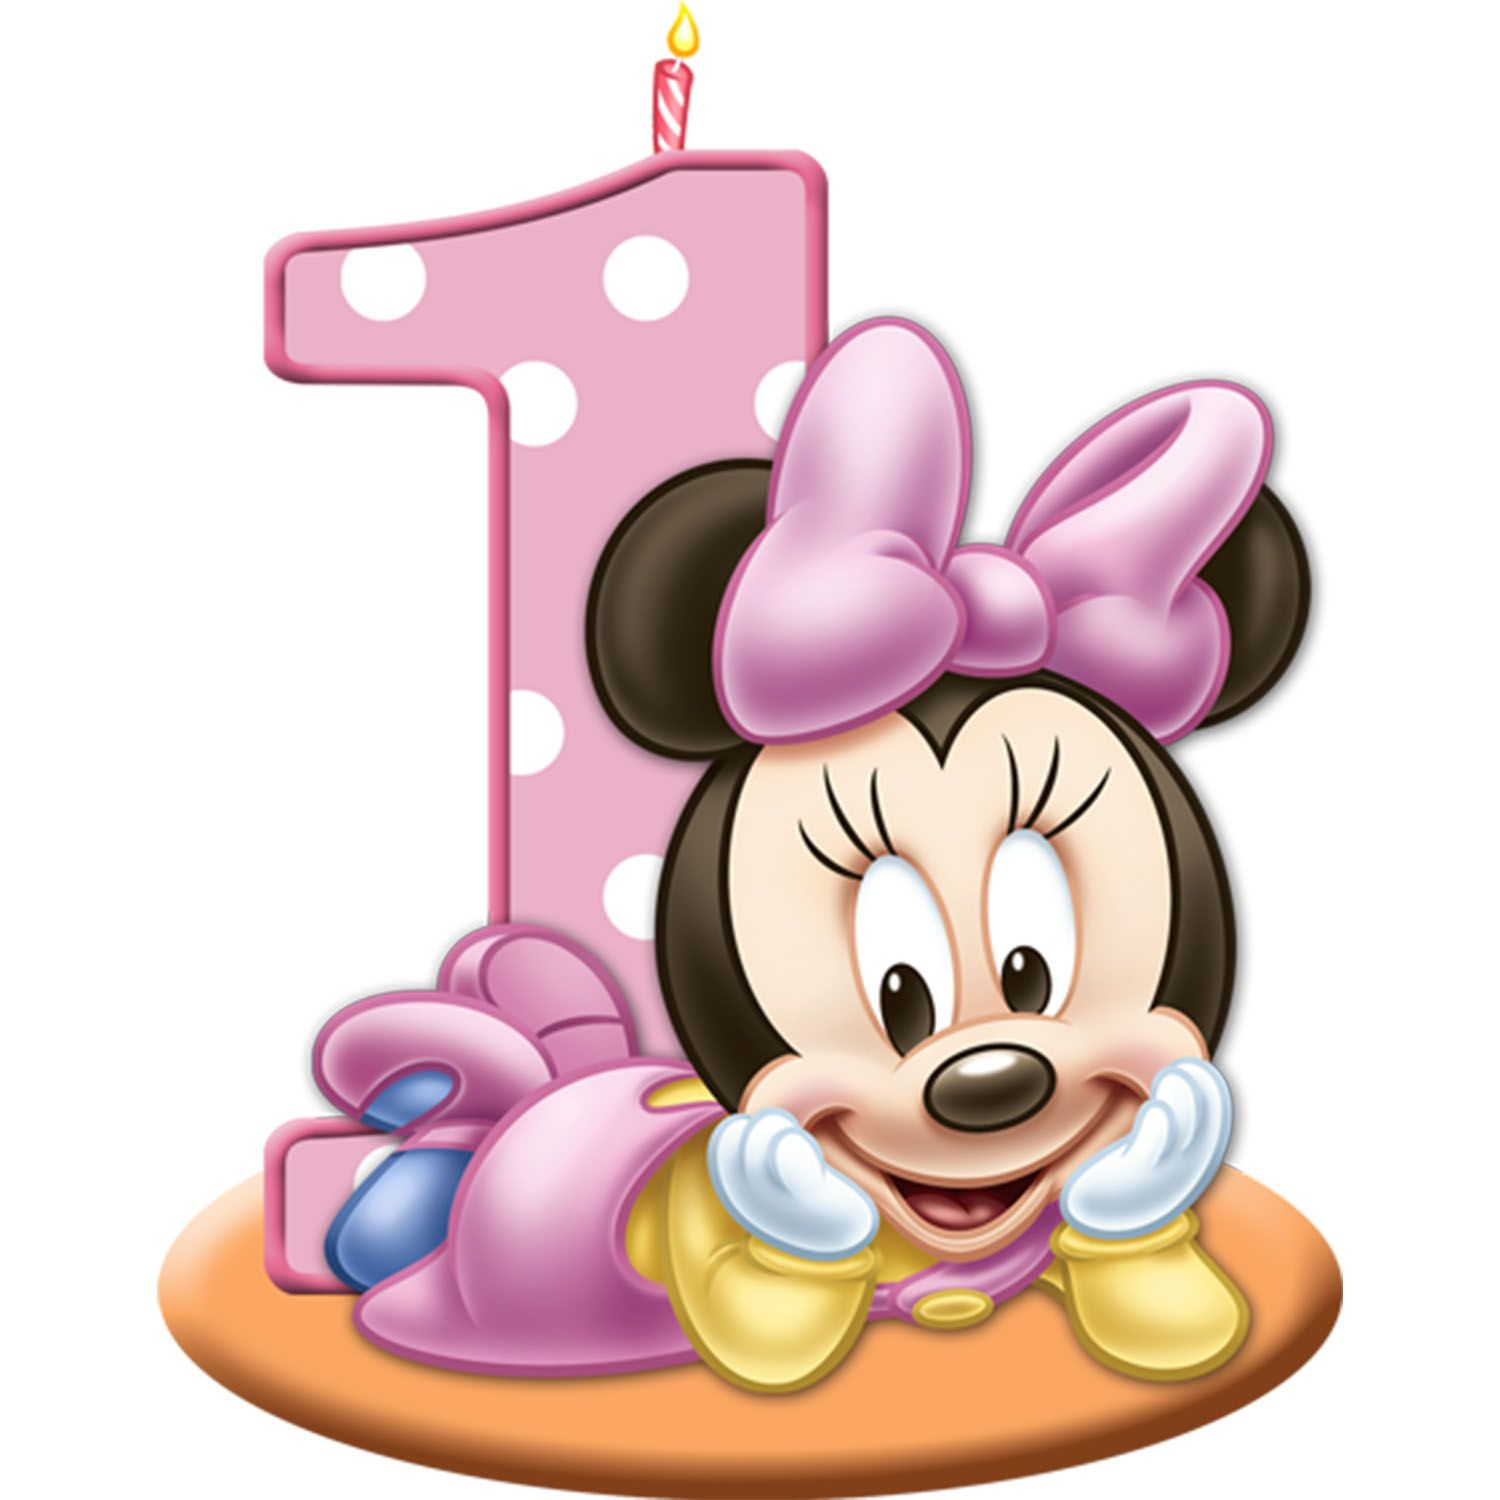 Pin by cheryl kirsch on baby pinterest minnie mouse mice and minnies birthday molded candle party accessory supplies party minnie filmwisefo Choice Image